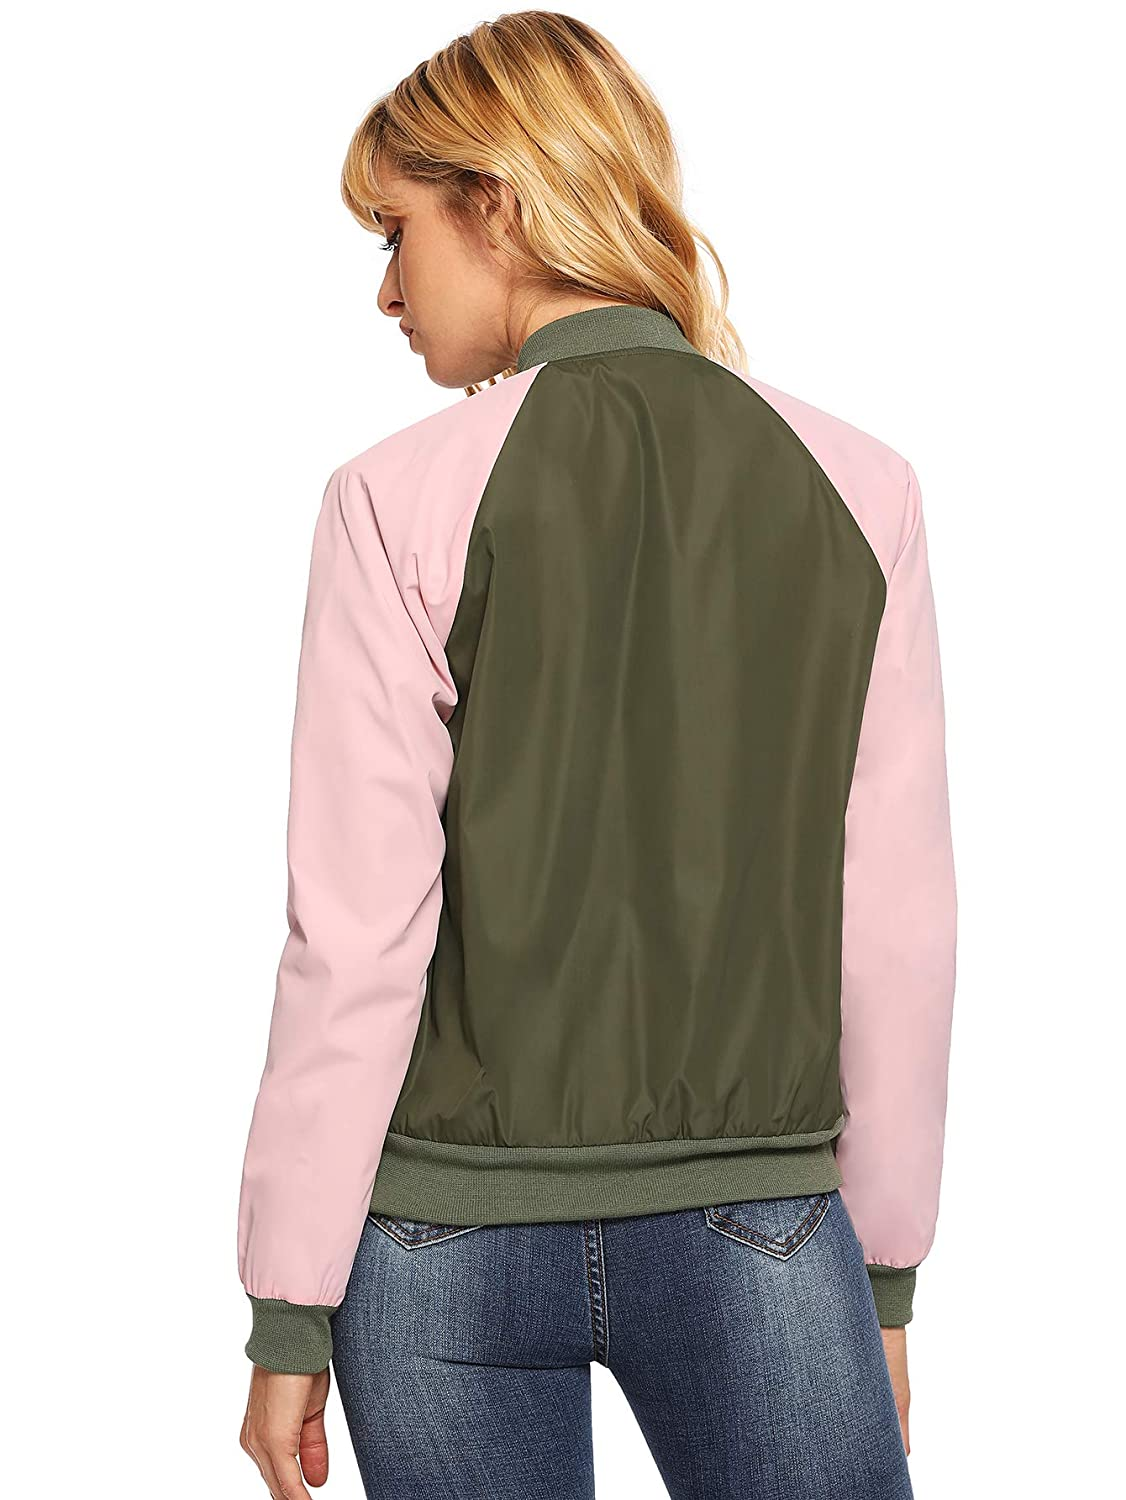 Floerns Womens Casual Short Embroidered Floral Bomber Jacket